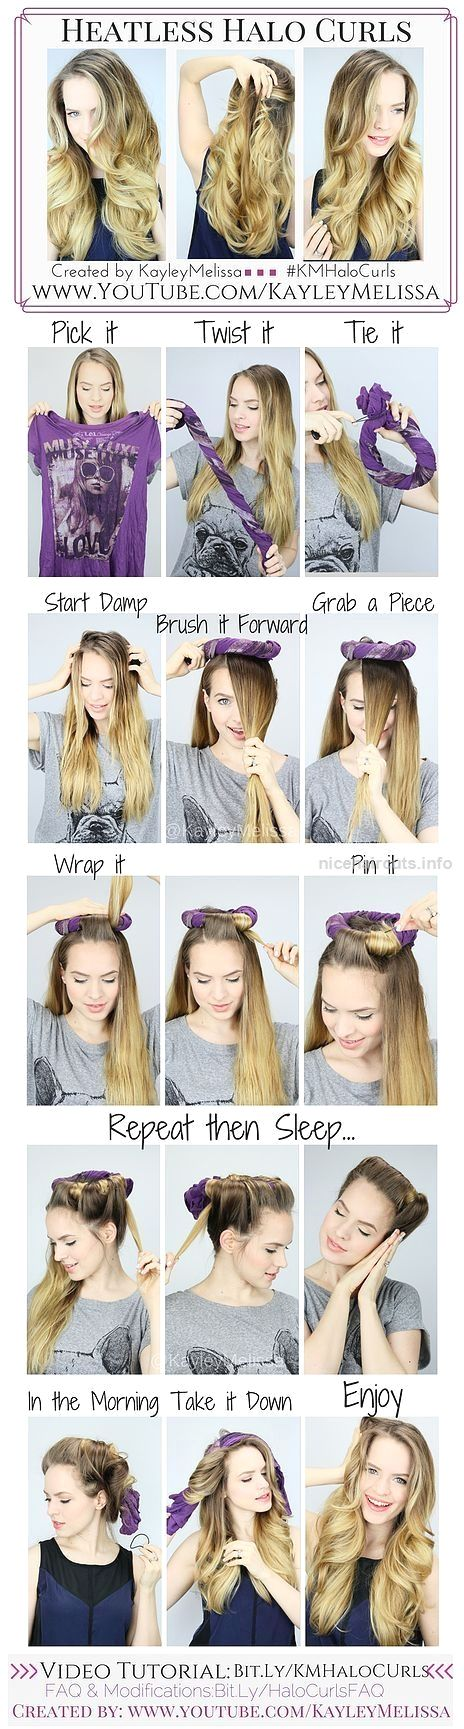 Heatless Halo Curls Hair Tutorial hair long hair curly hair diy hair hairstyles hair tutorials easy hairstyles  Heatless Halo Curls Hair Tutorial Pictures, Photos, and Images for Facebook, Tumblr, Pinterest, and Twitter  http://www.nicehaircuts.info/2017/05/27/heatless-halo-curls-hair-tutorial-hair-long-hair-curly-hair-diy-hair-hairstyles-hair-tutorials-easy-hairstyles/